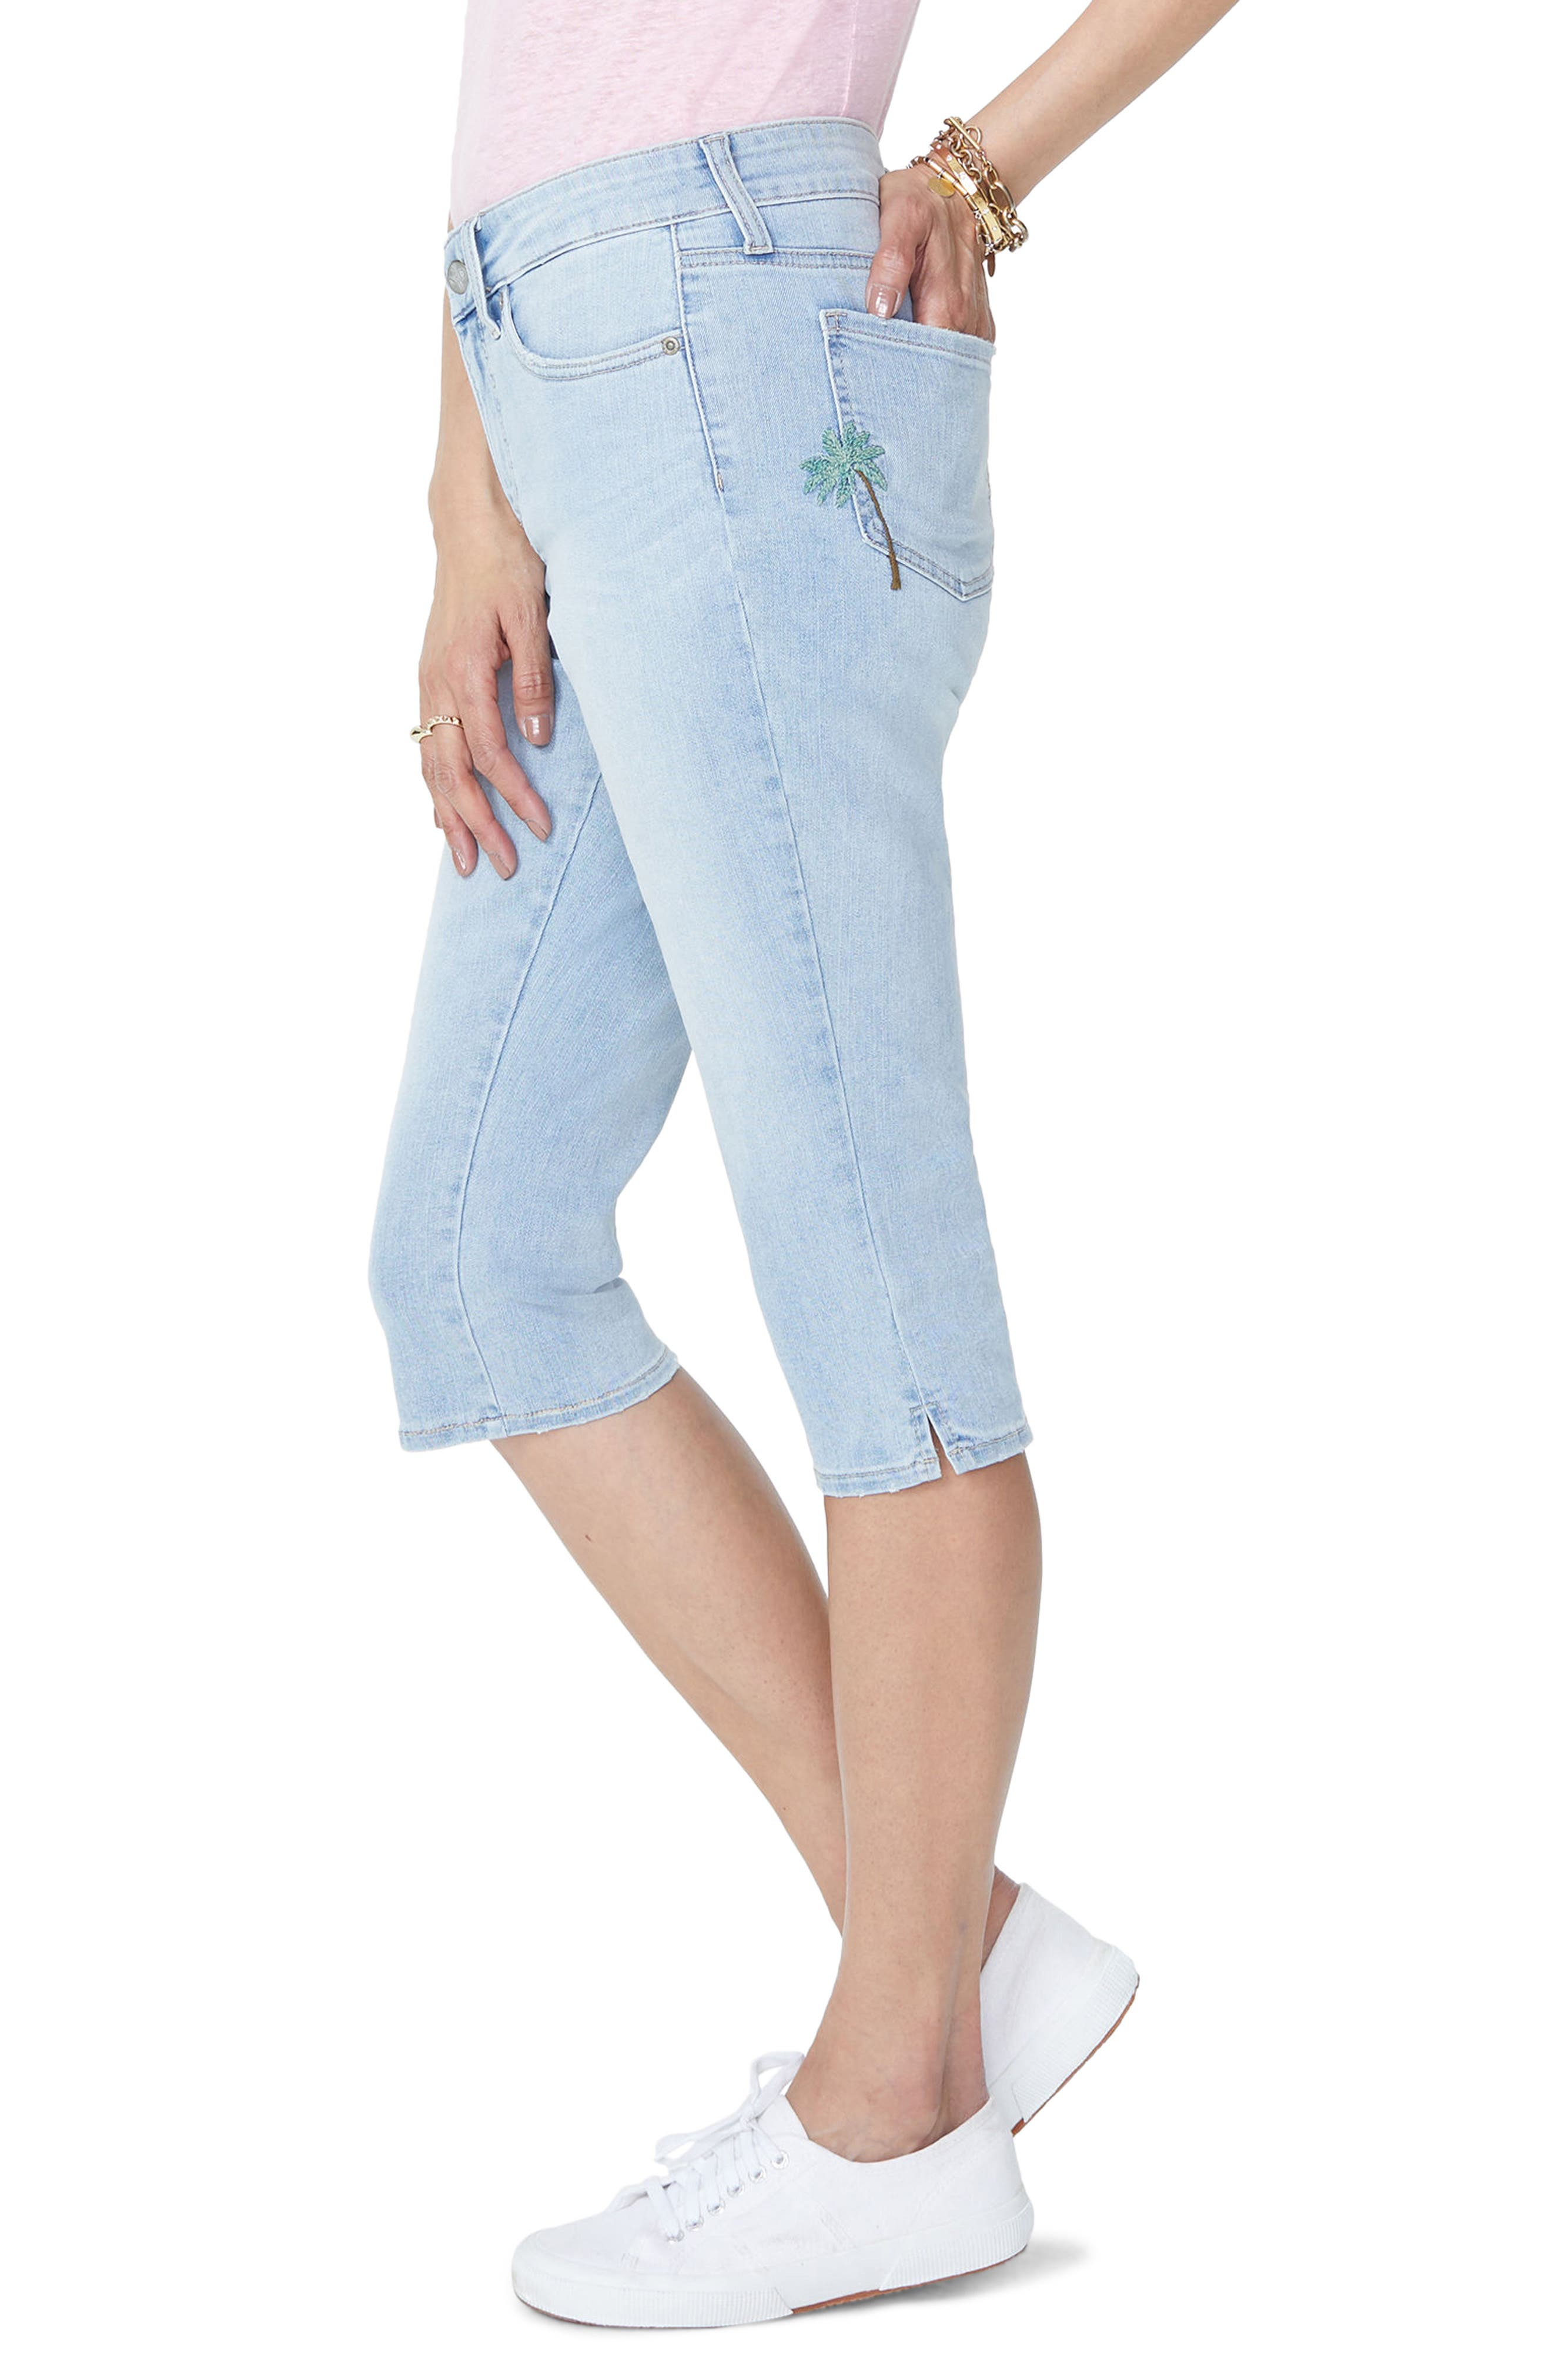 Embroidered Stretch Skinny Capri Jeans,                             Alternate thumbnail 4, color,                             Clean Cloud Nine